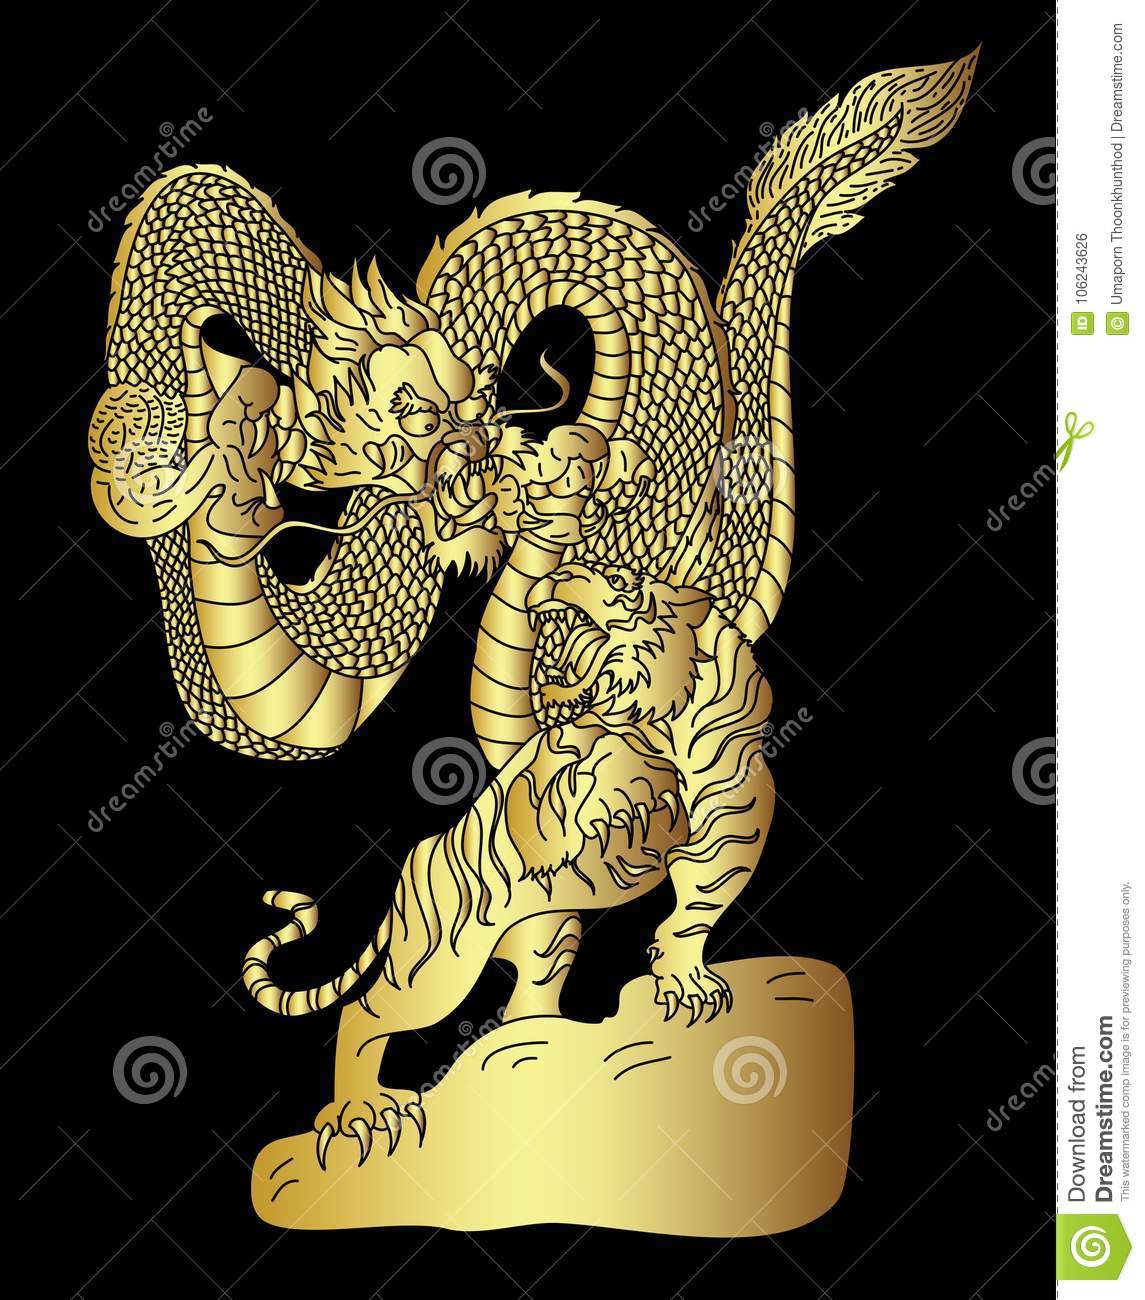 b089035af Golden Dragon Fighting With Tiger Tattoo. Stock Vector ...